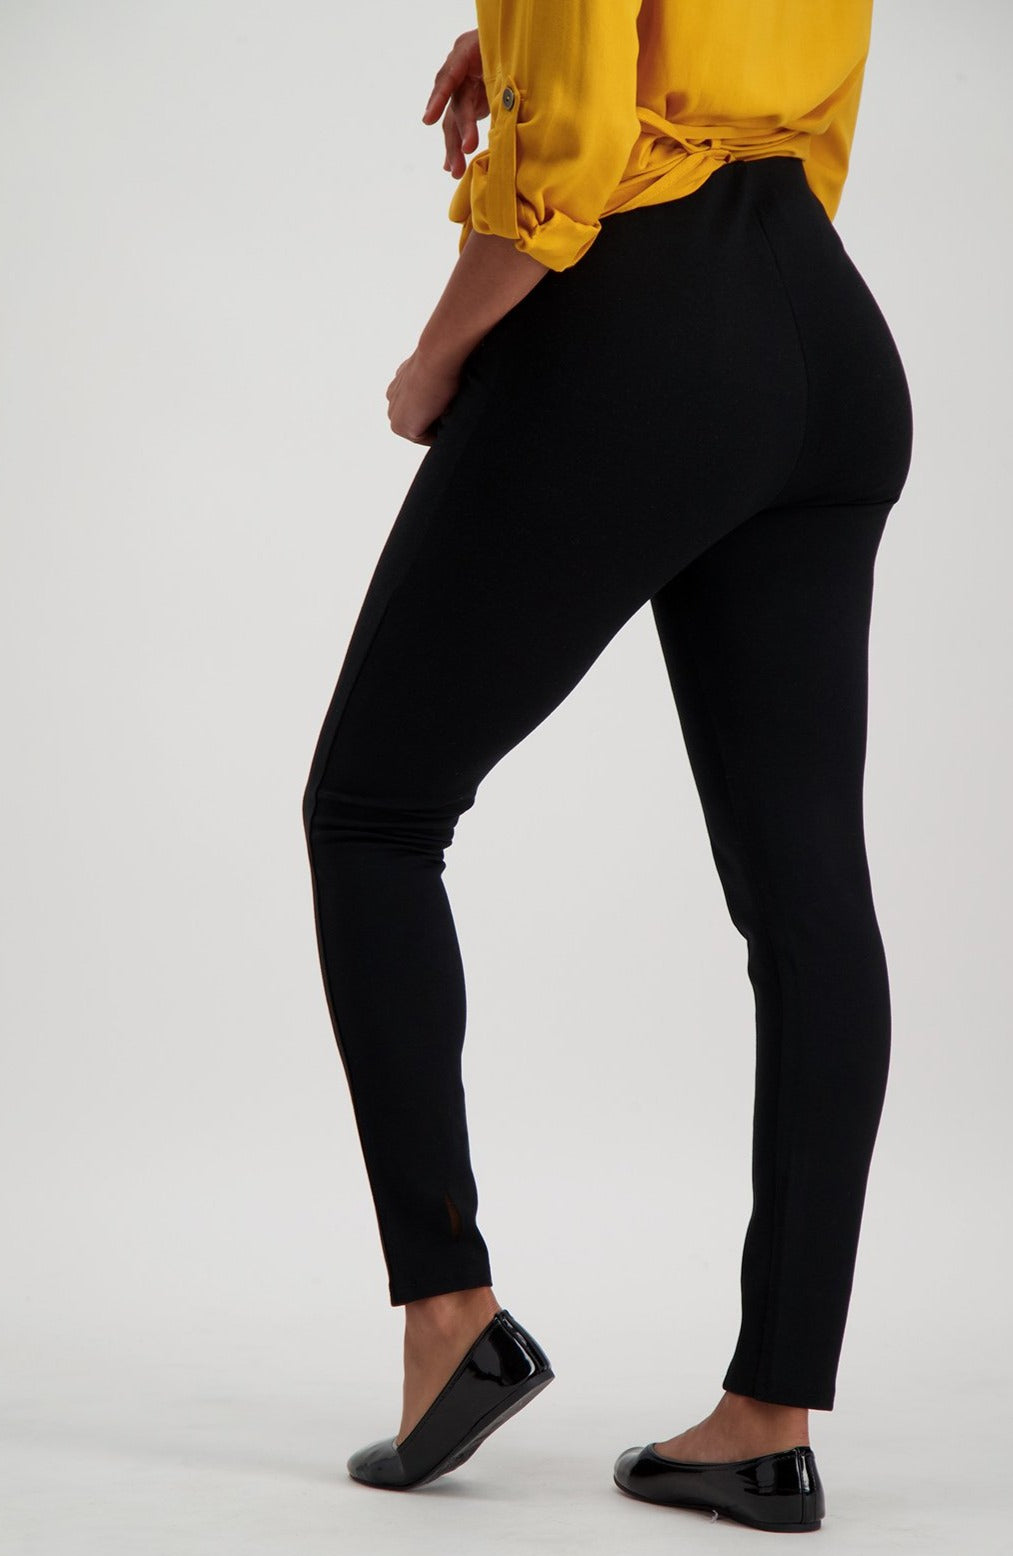 Scarlette Super Stretch Legging _ 120059 _ Black